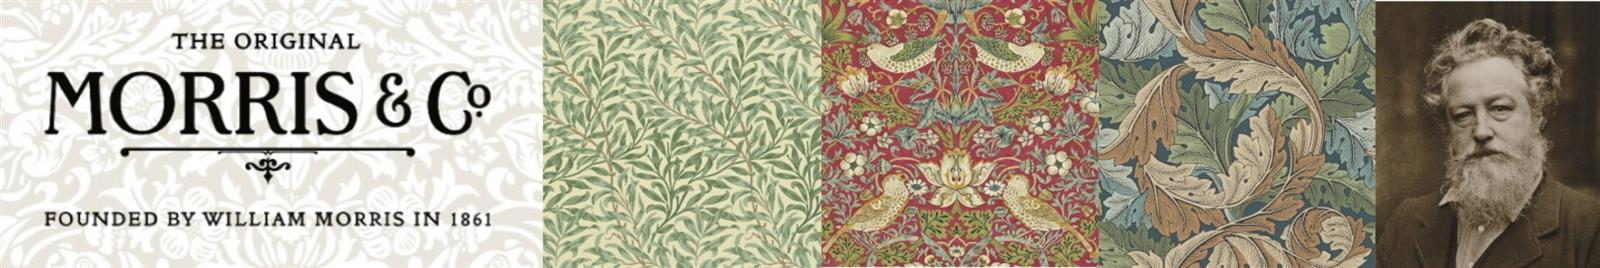 Morris and Co Wallpaper-Willow